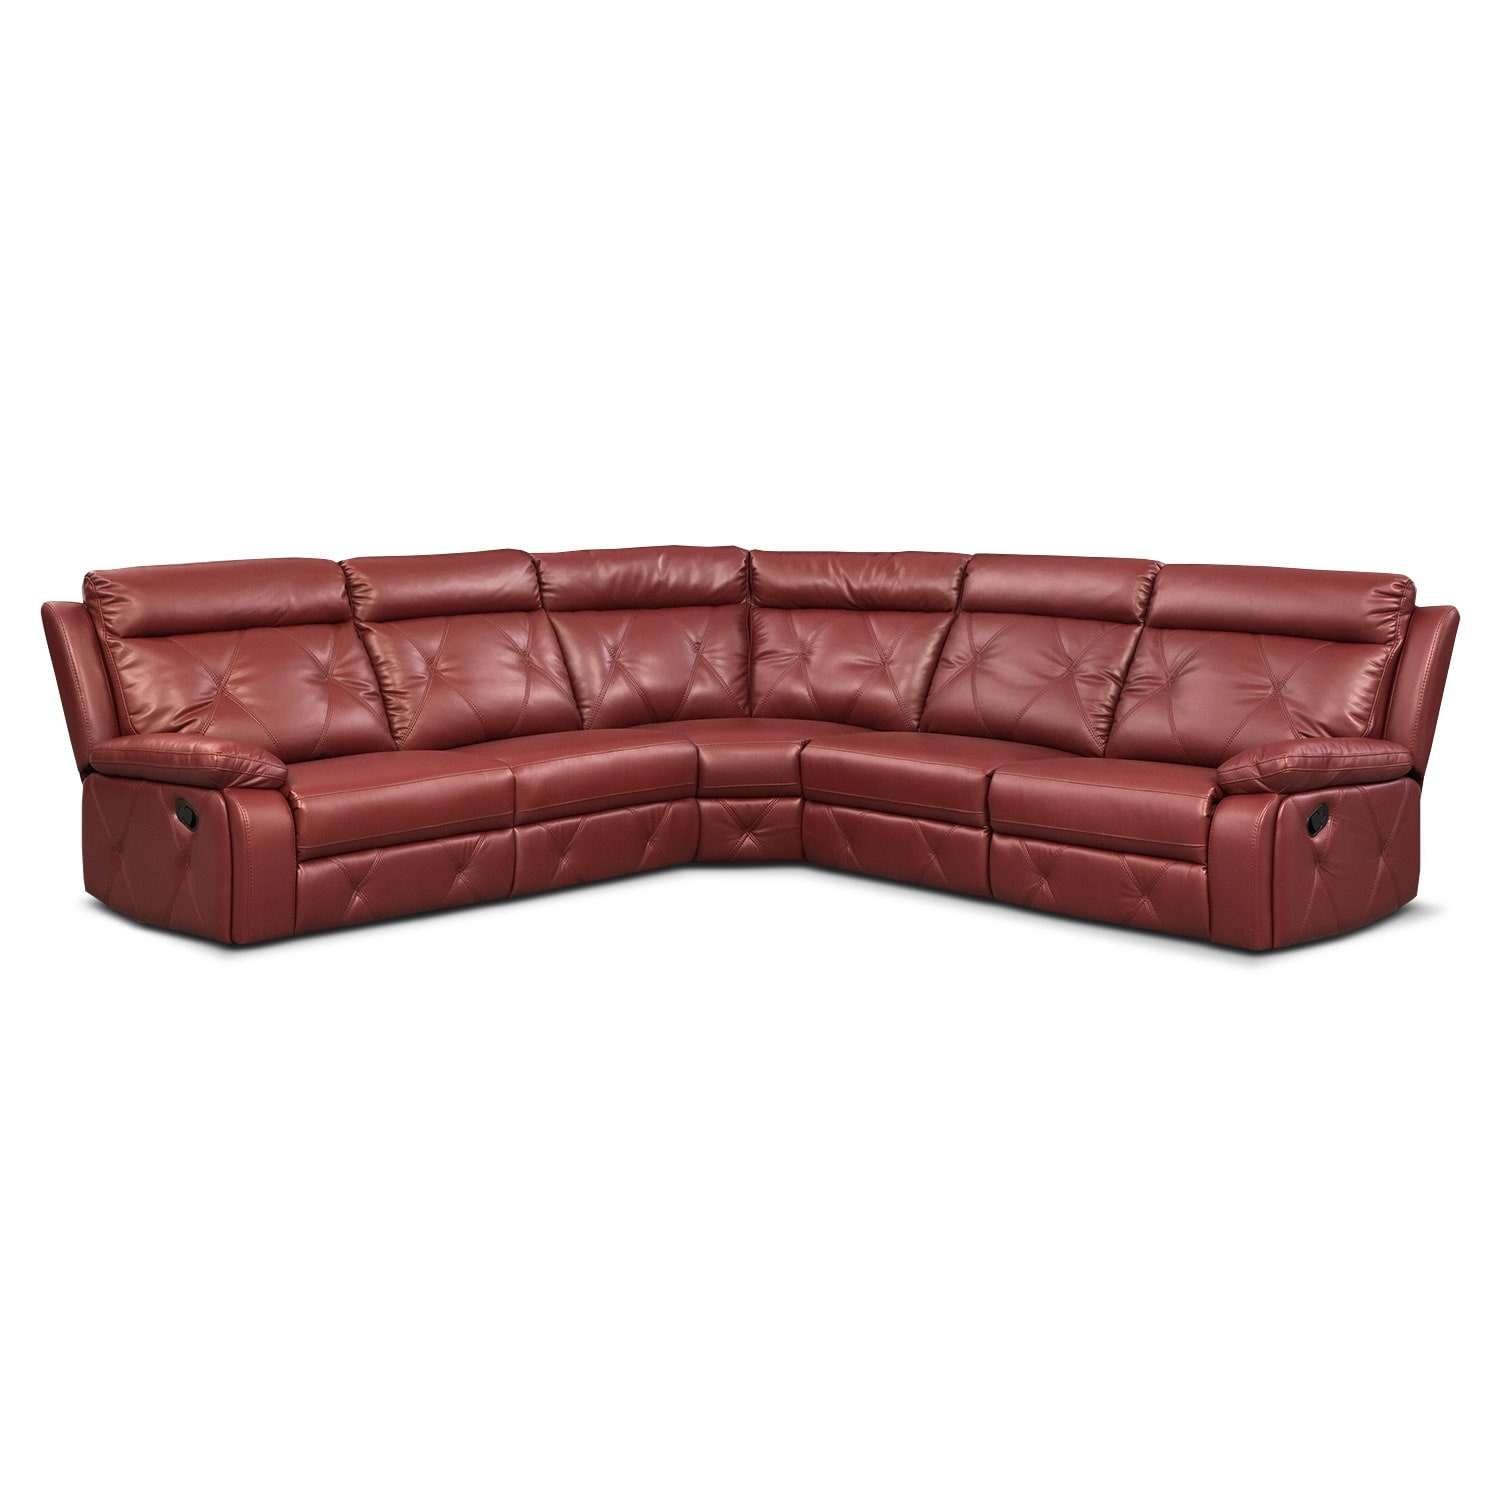 [Dante Red 5 Pc. Reclining Sectional w/ 2 Reclining Seats]